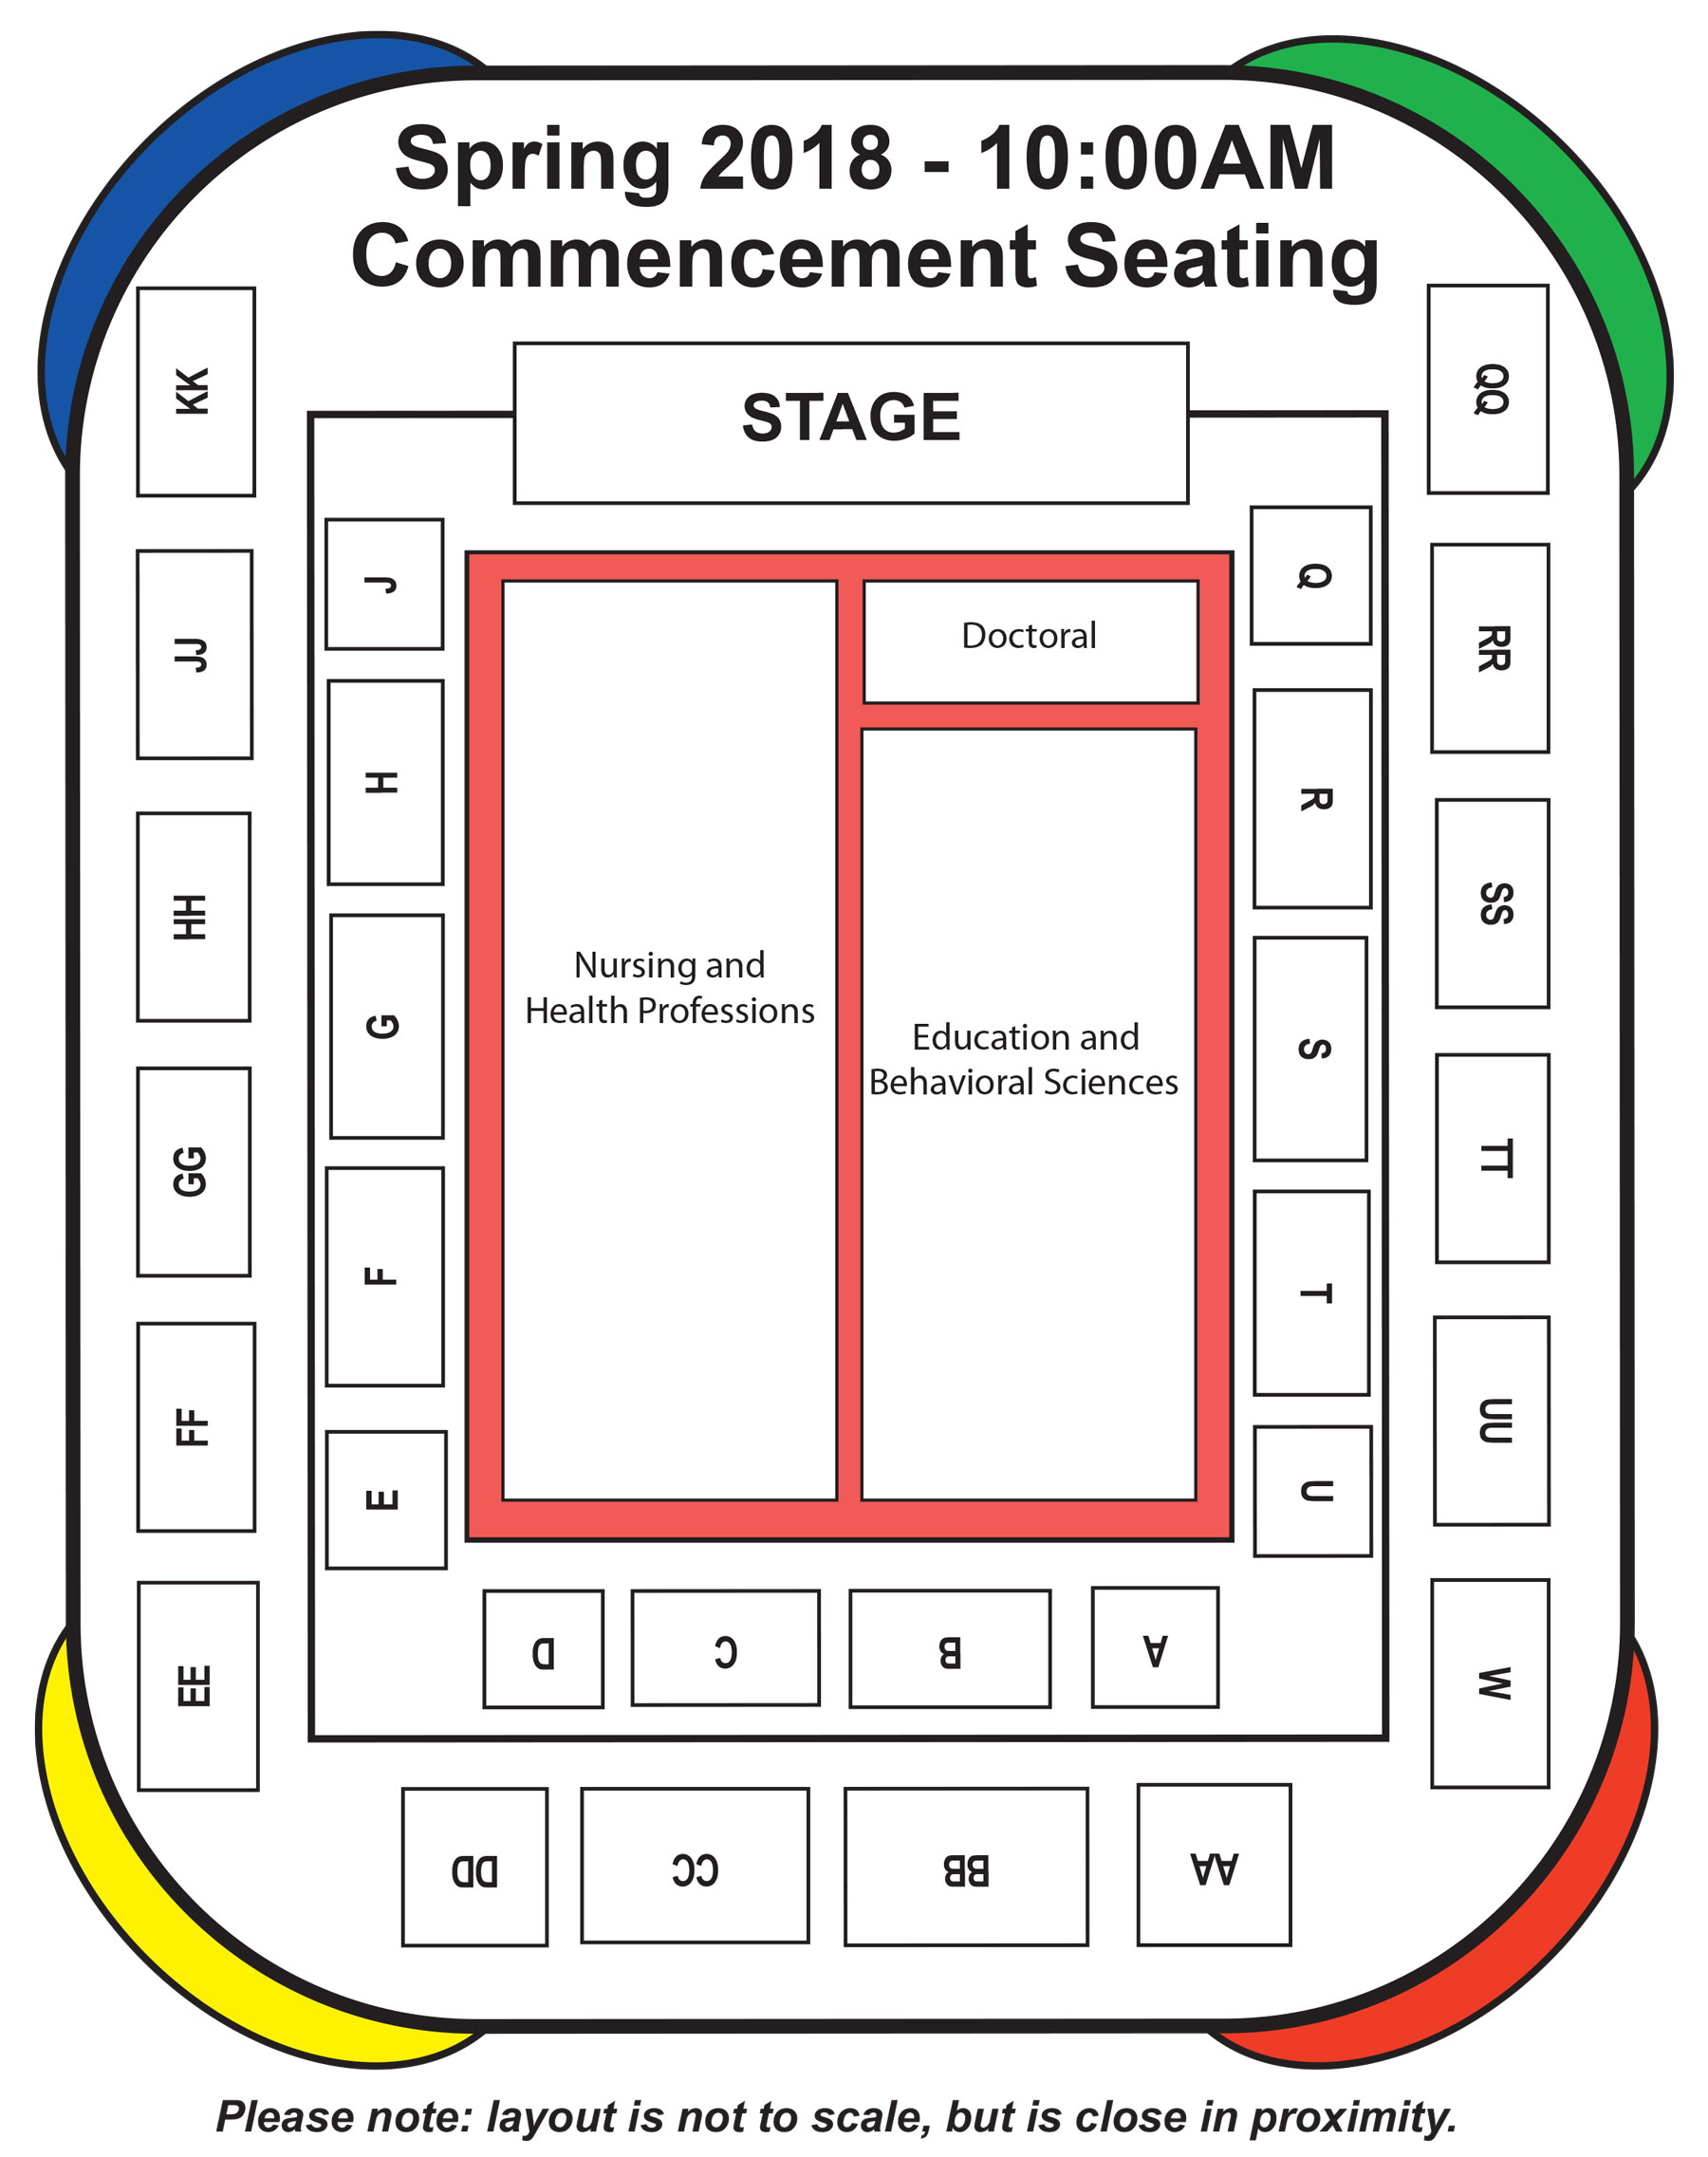 The morning commencement seating map